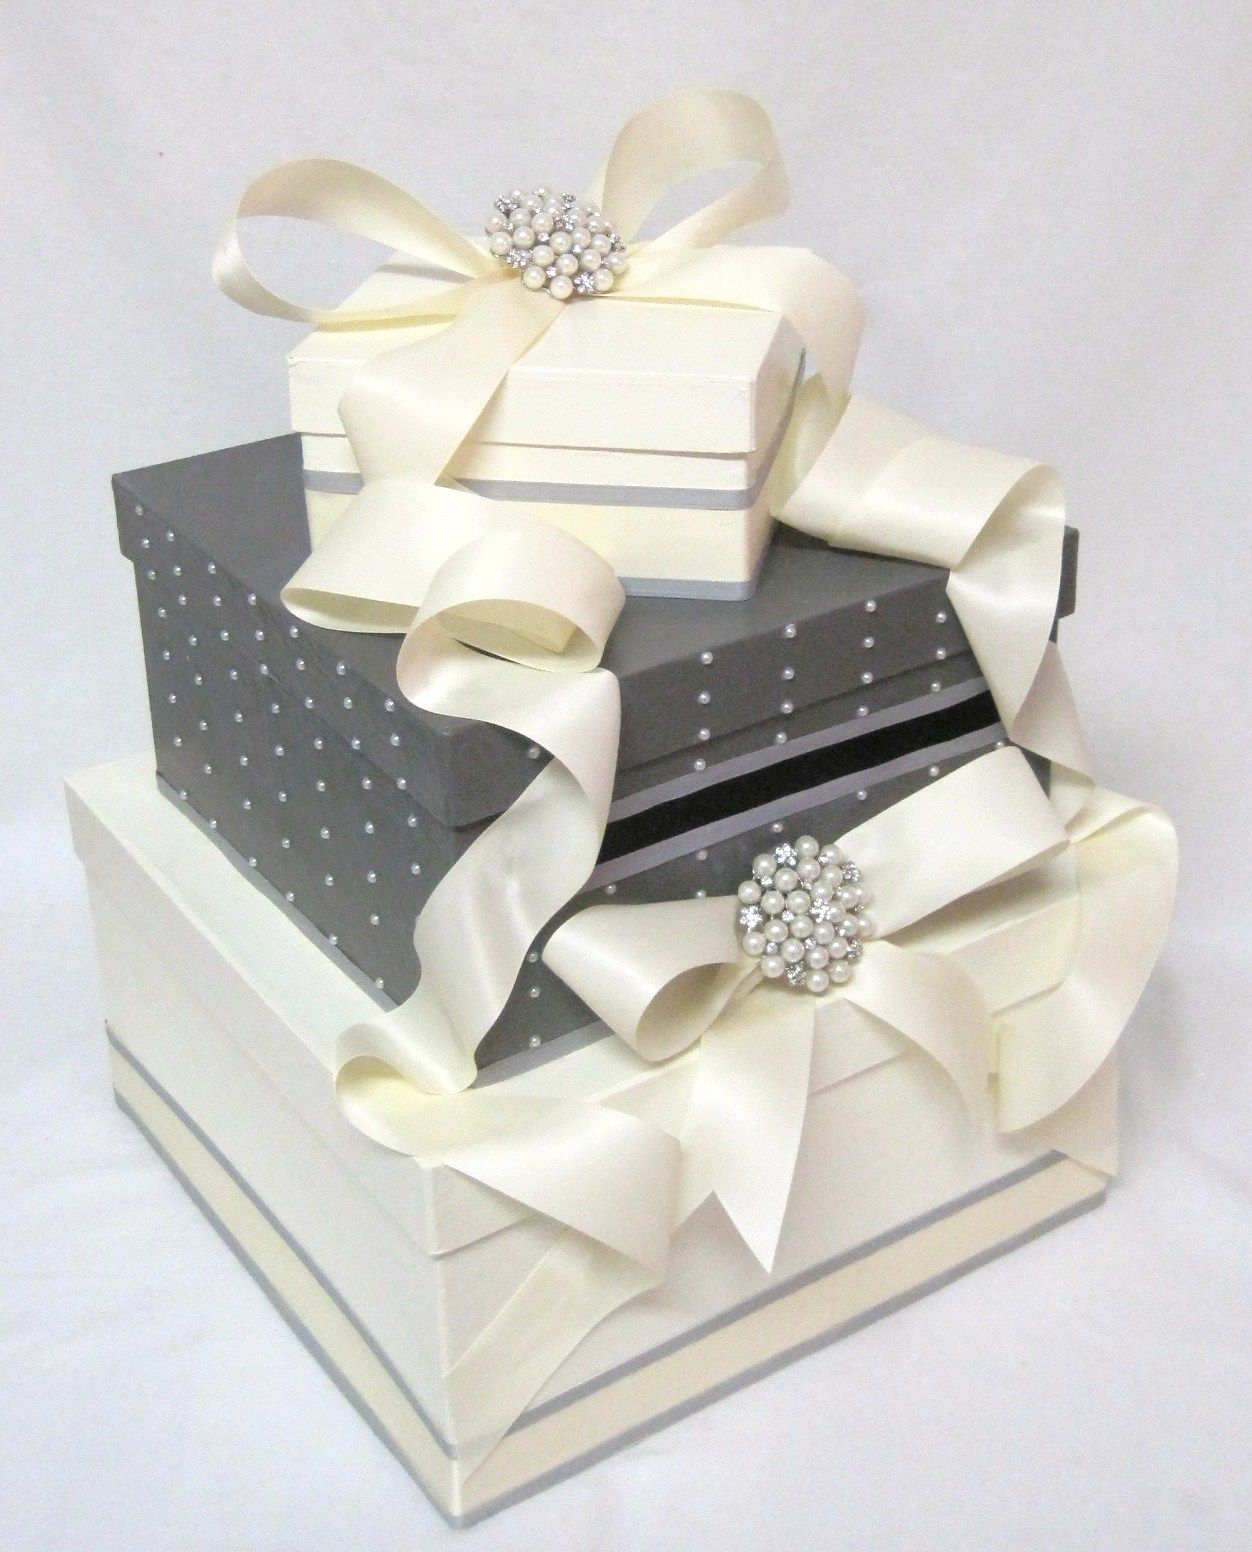 Wedding Gift Wrapping Ideas Images: Beautiful Box Gift Wrap Idea